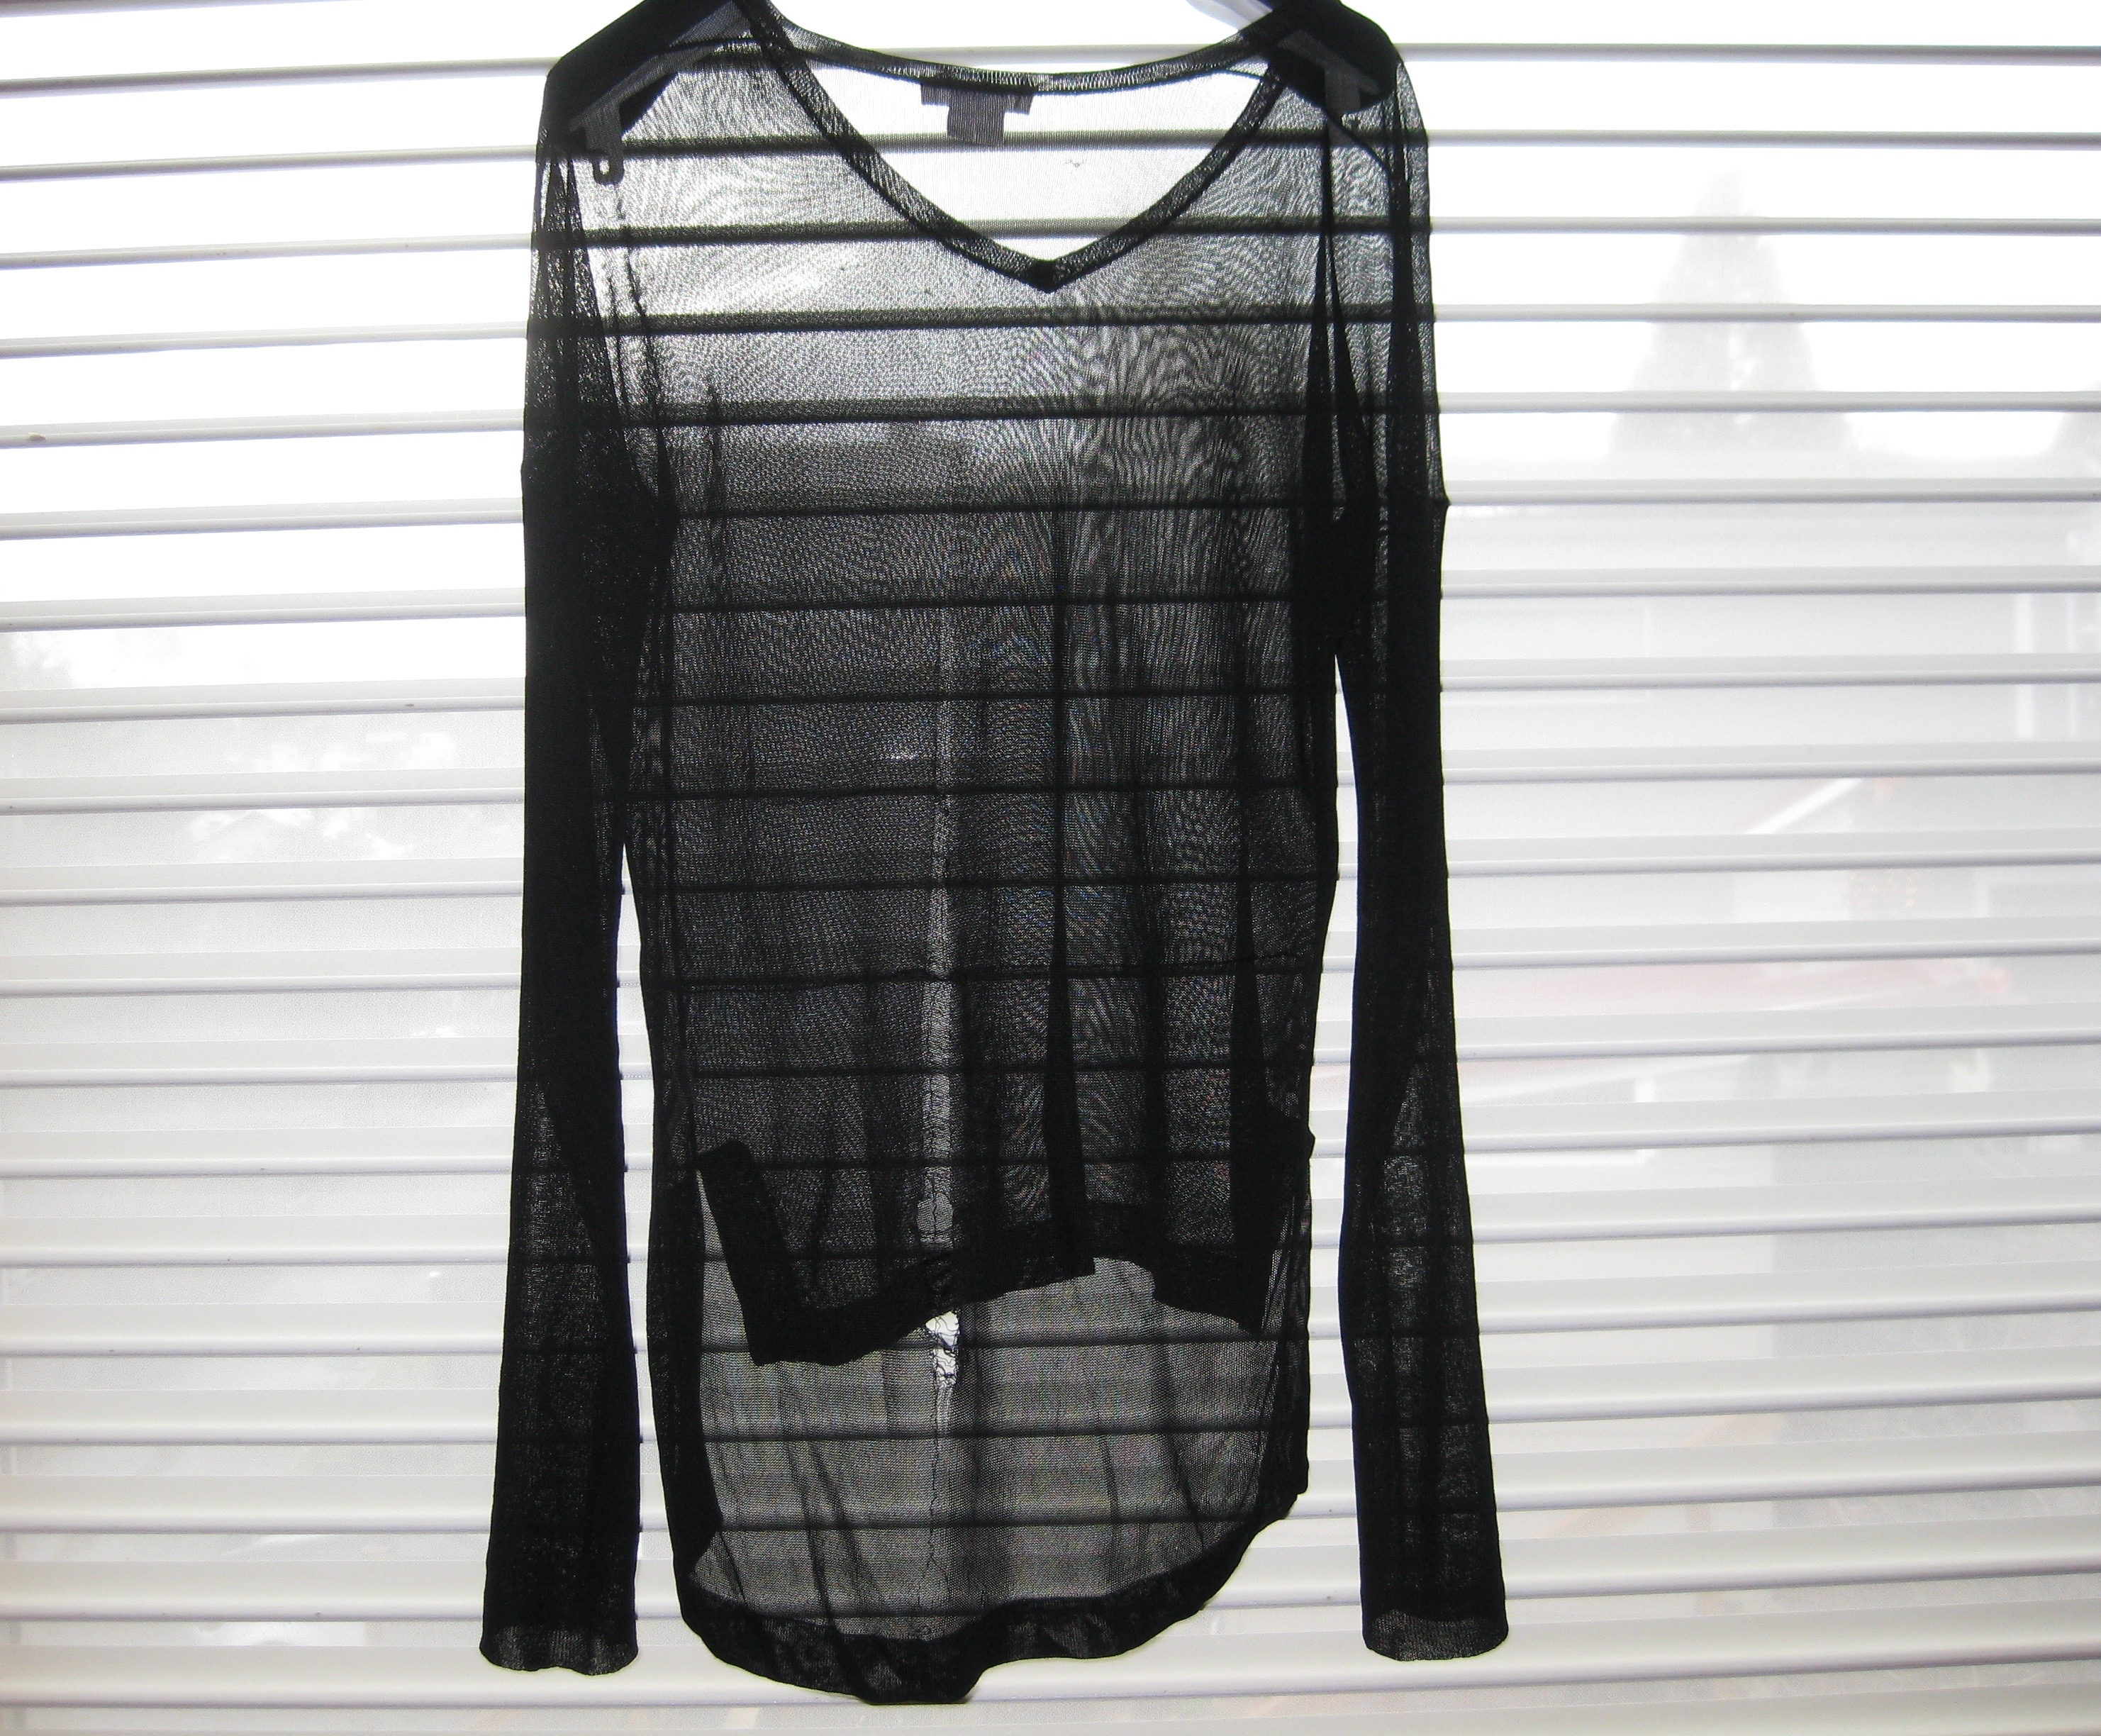 Snagged Helmut Lang top